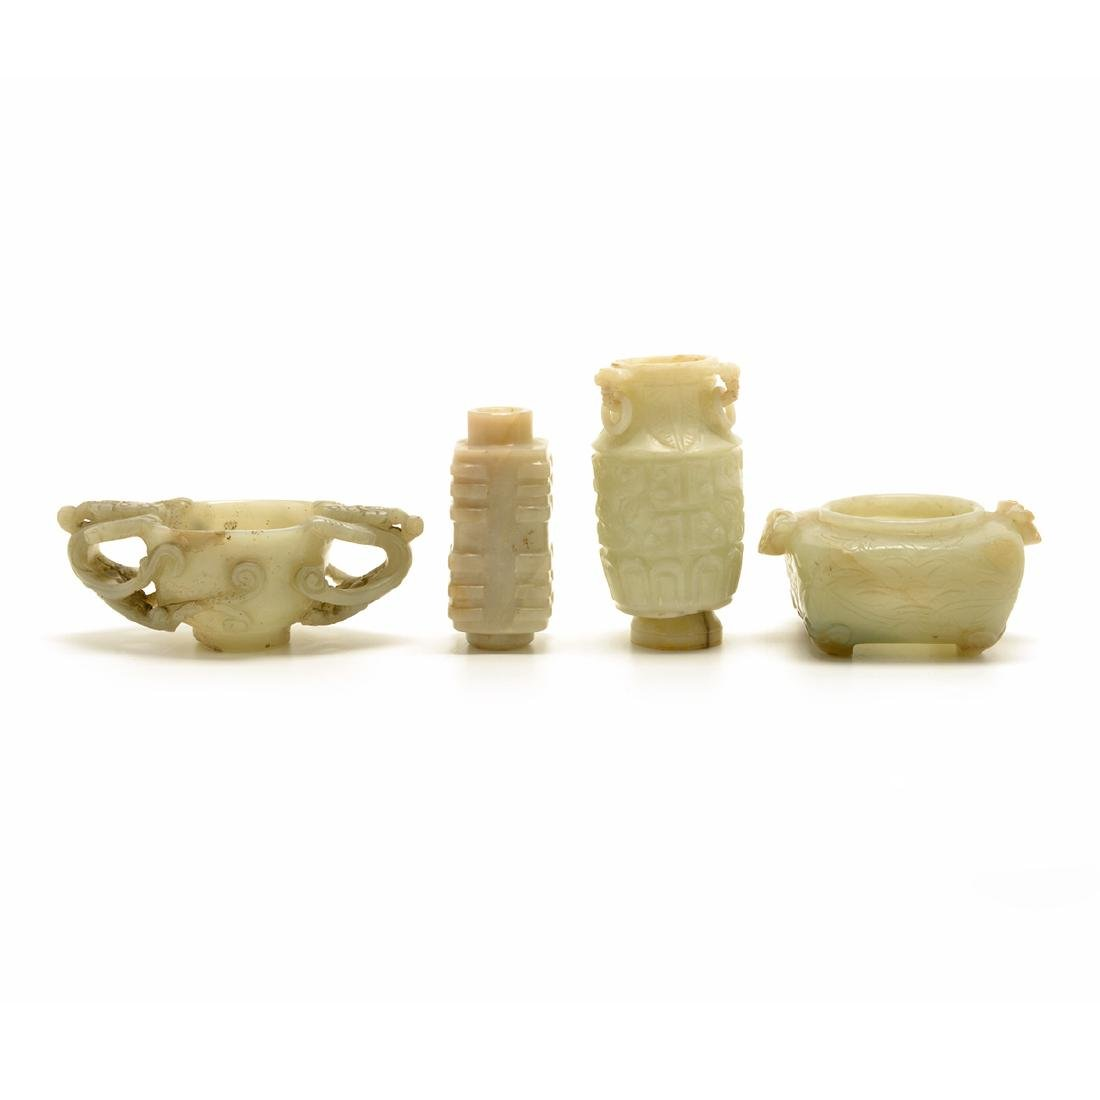 Four Jade Carvings, Ming Dynasty and Later